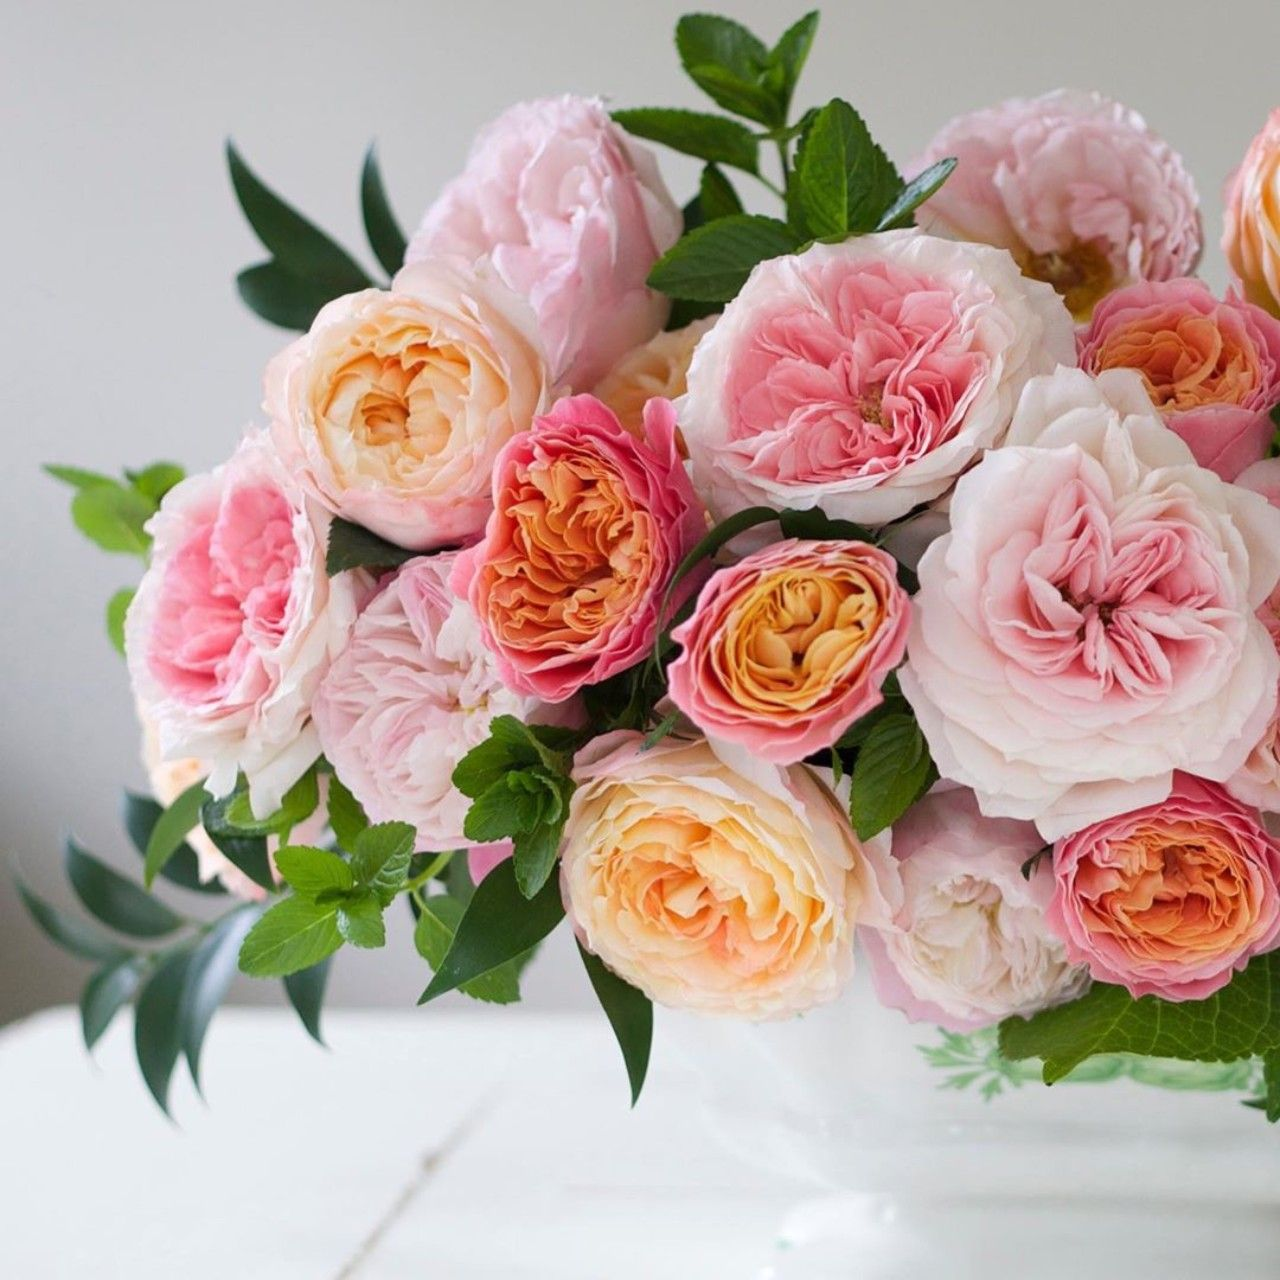 Rosa Loves Me Just A Little Bit More Mayra S Bridal Pink Princess Aiko Beloved And Princess Charlene Of Monaco The Various Rose Growing Roses Short Vase